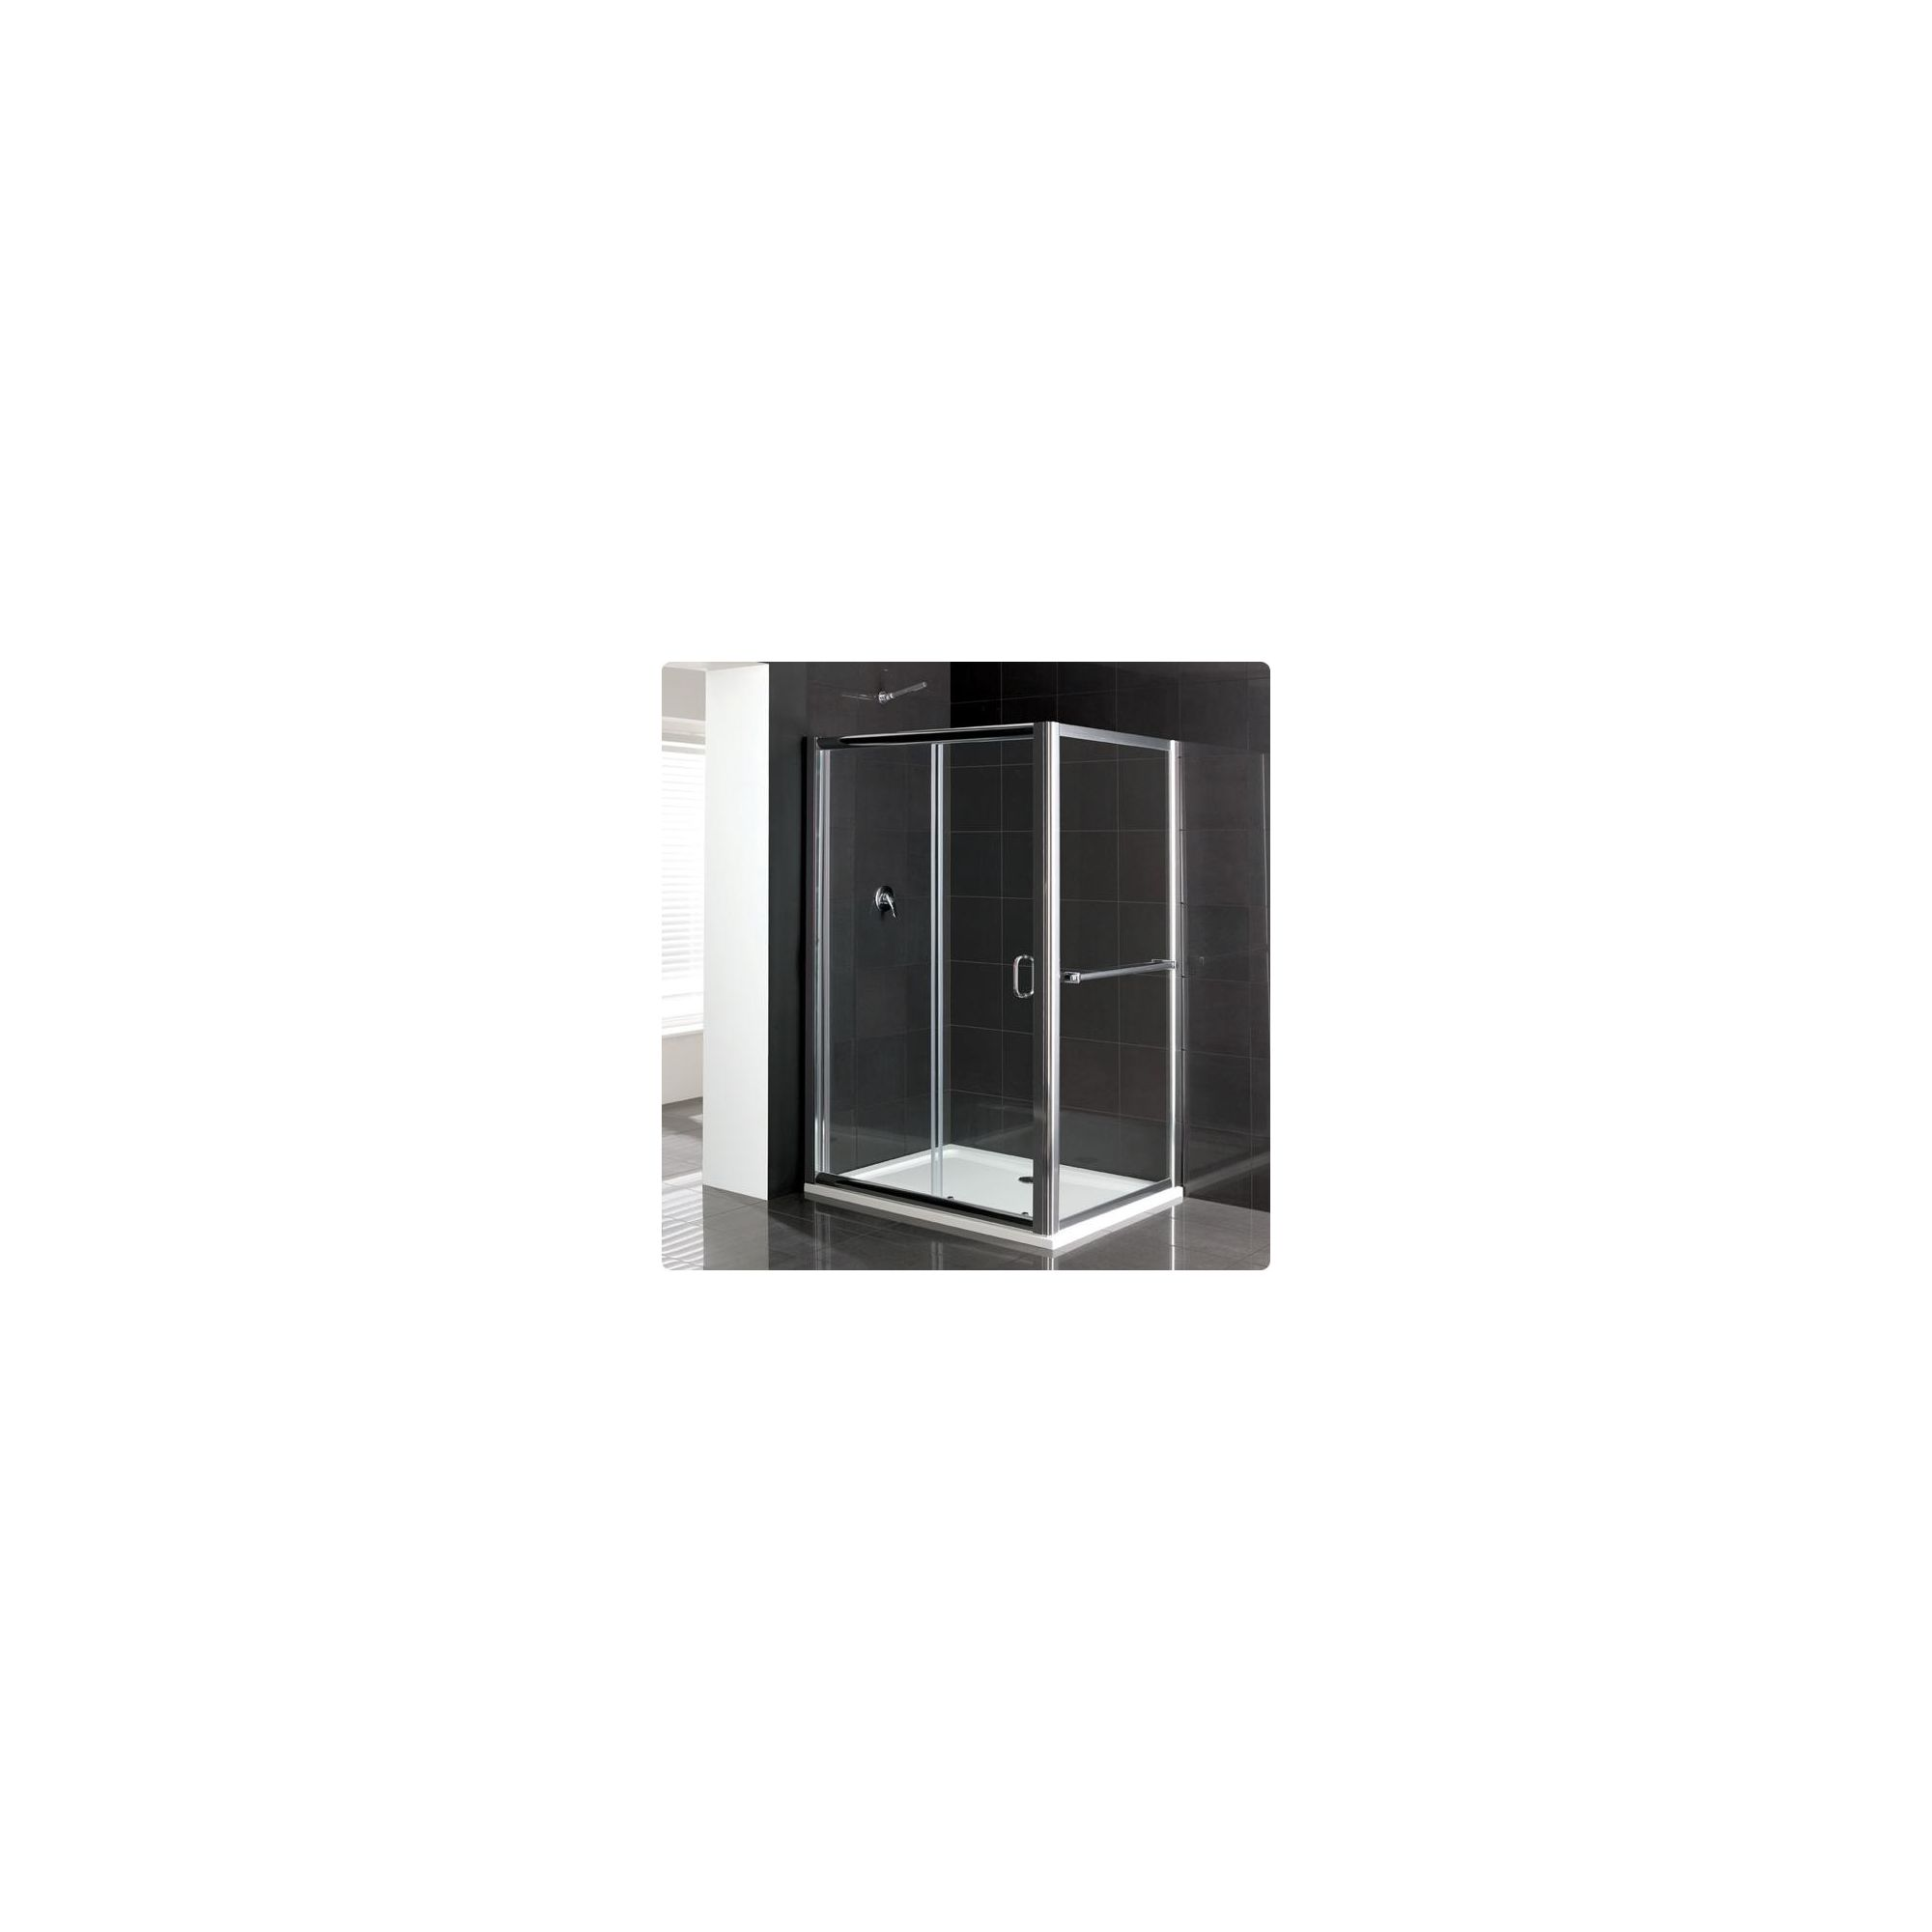 Duchy Elite Silver Sliding Door Shower Enclosure, 1700mm x 900mm, Standard Tray, 6mm Glass at Tesco Direct